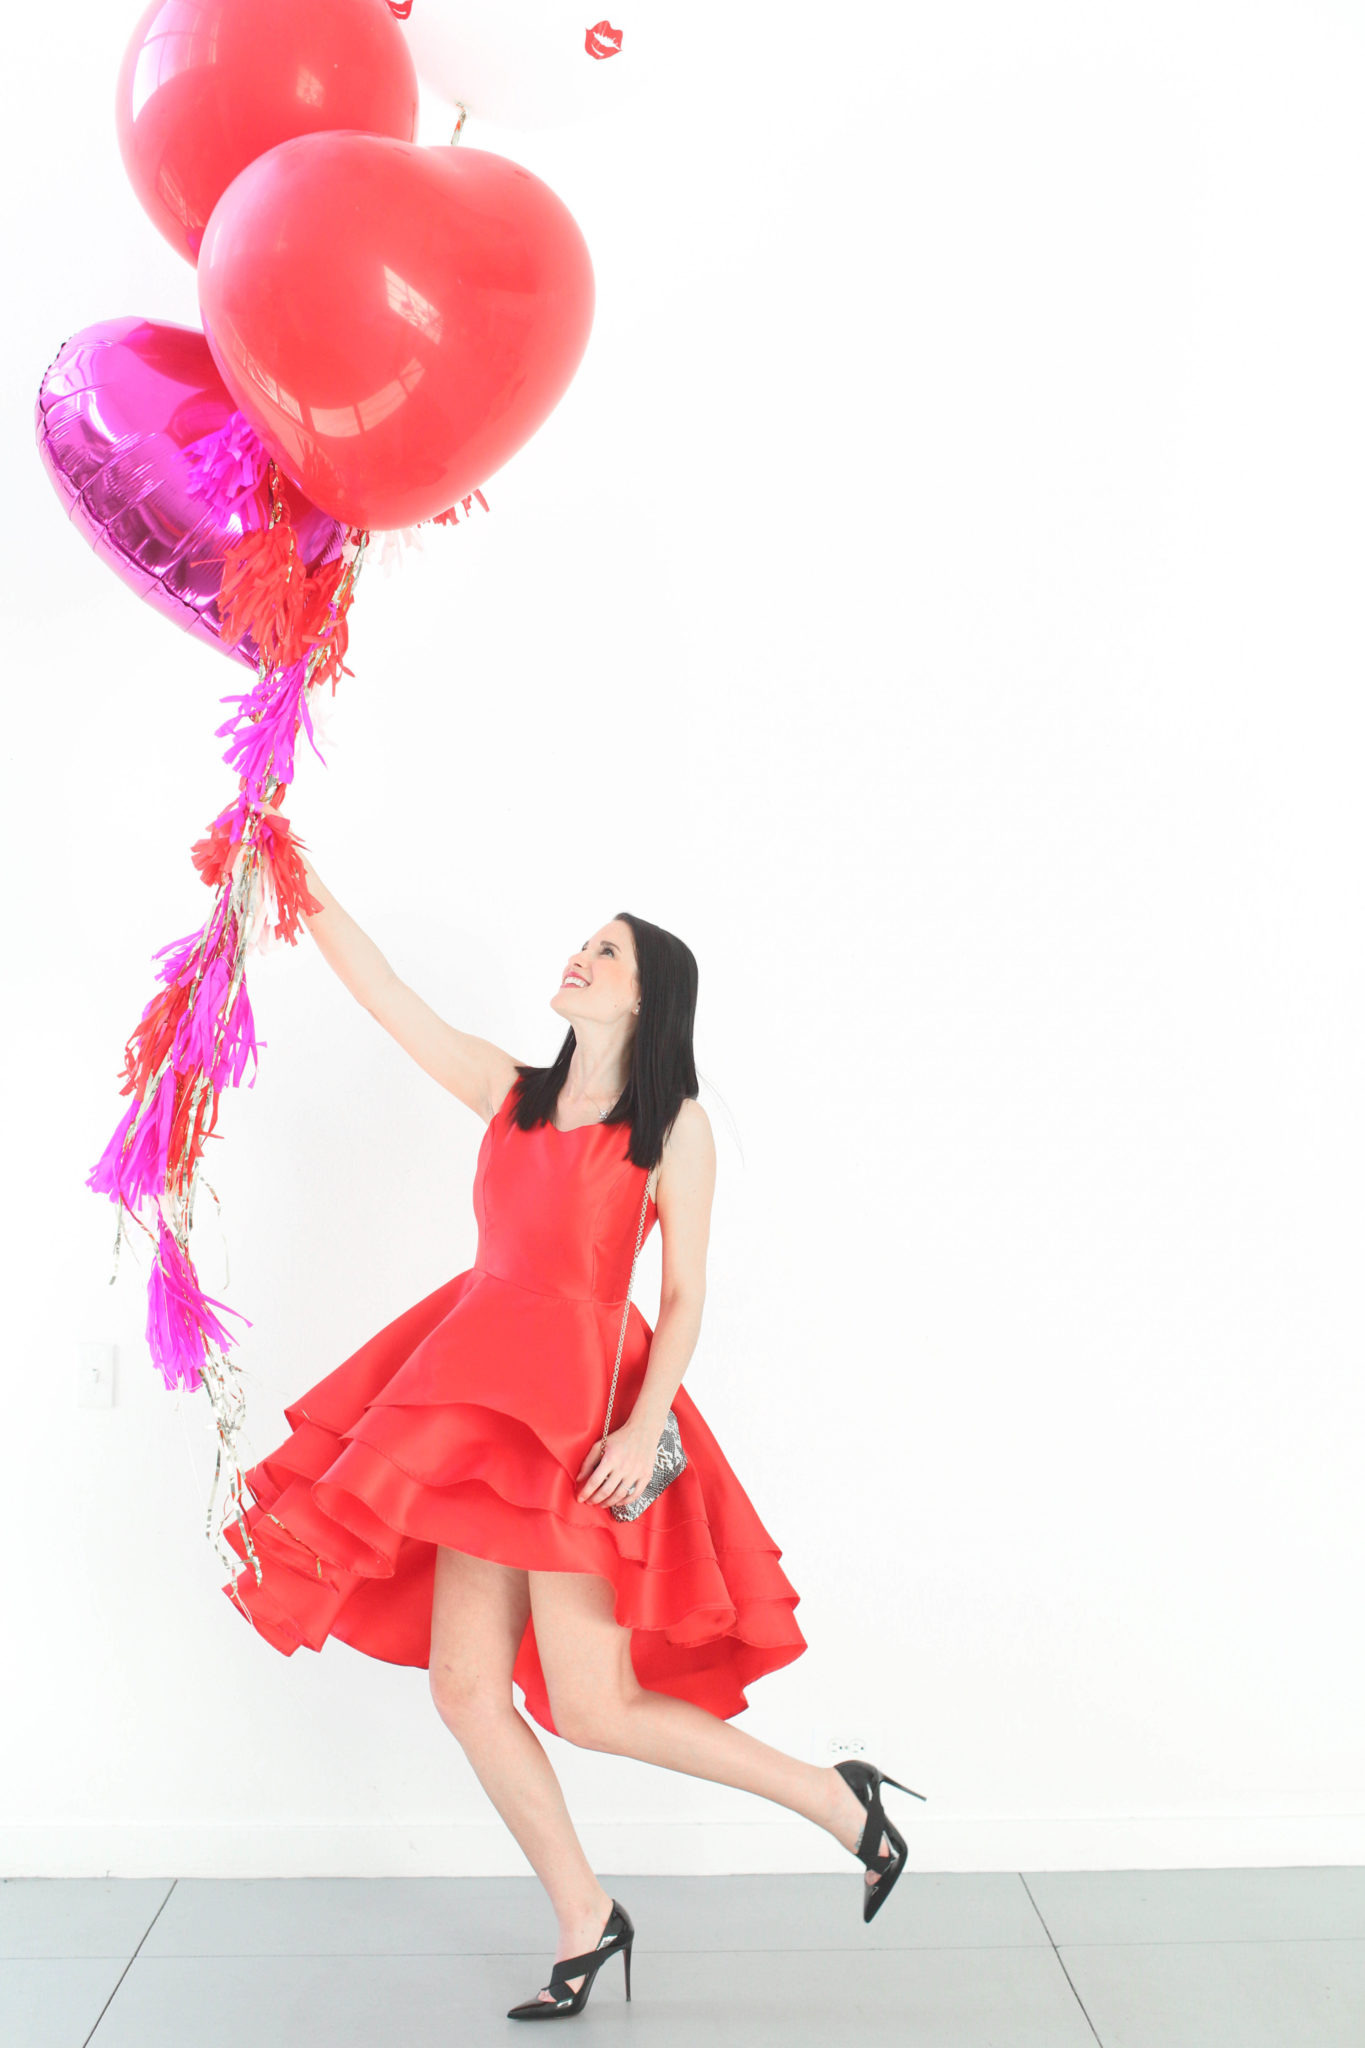 12 Must Have Little Red Dresses for Galentine's Day | classy red dresses | red dress outfit | valentine's day outfit | Valentine's Day dress || Dressed to Kill #reddress #valentinedress #valentineoutfit | Little Red Dresses for Galentine's Day by top US fashion blog, Dressed to Kill: image of a woman holding balloons and wearing a Jill Jill Stuart red dress, Kelly Wynne bag and Steve Madden shoes.